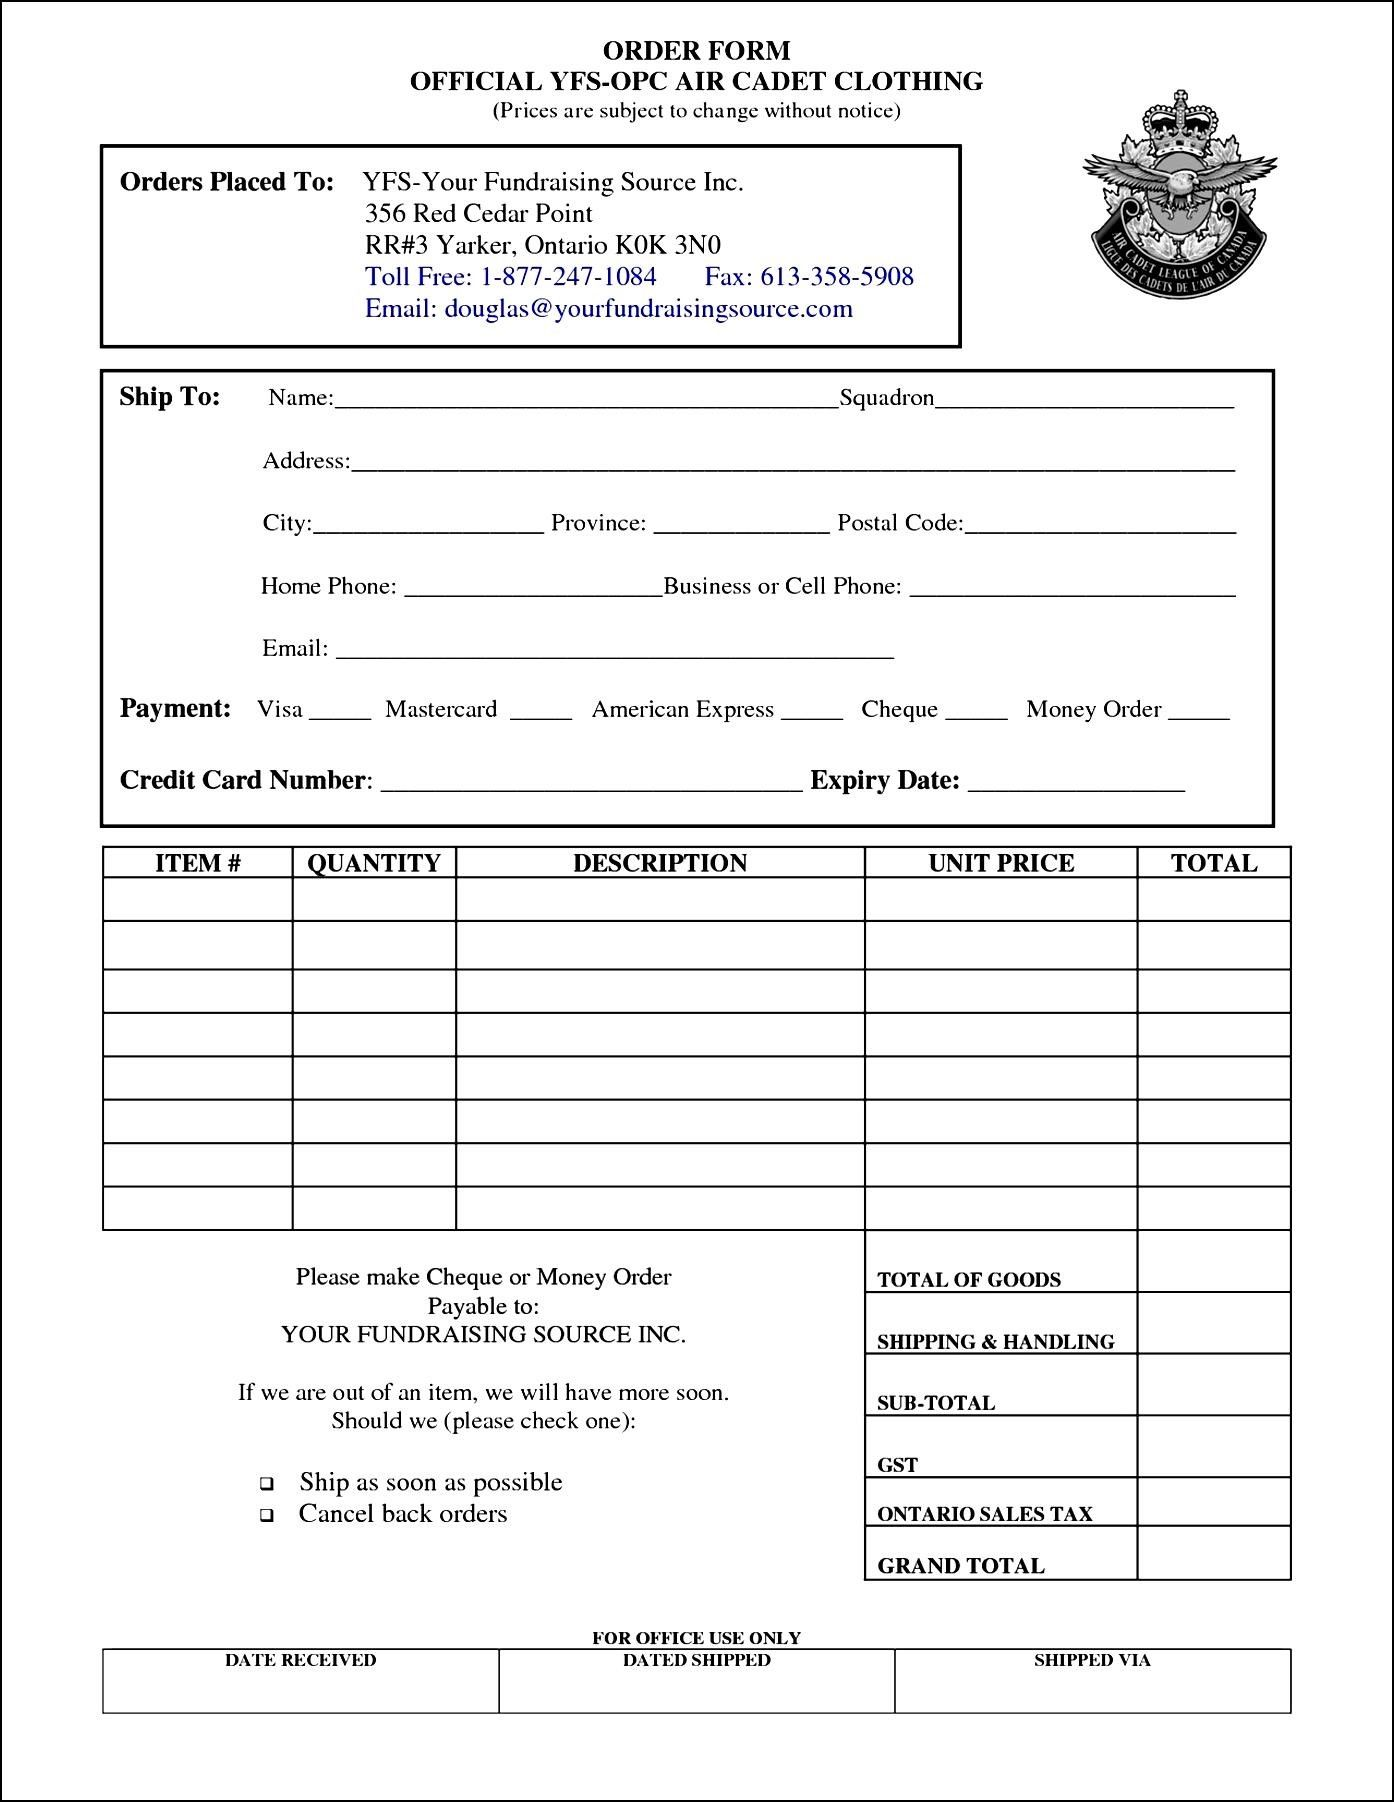 Clothing Order Form Template Free  Besttemplates  Sample